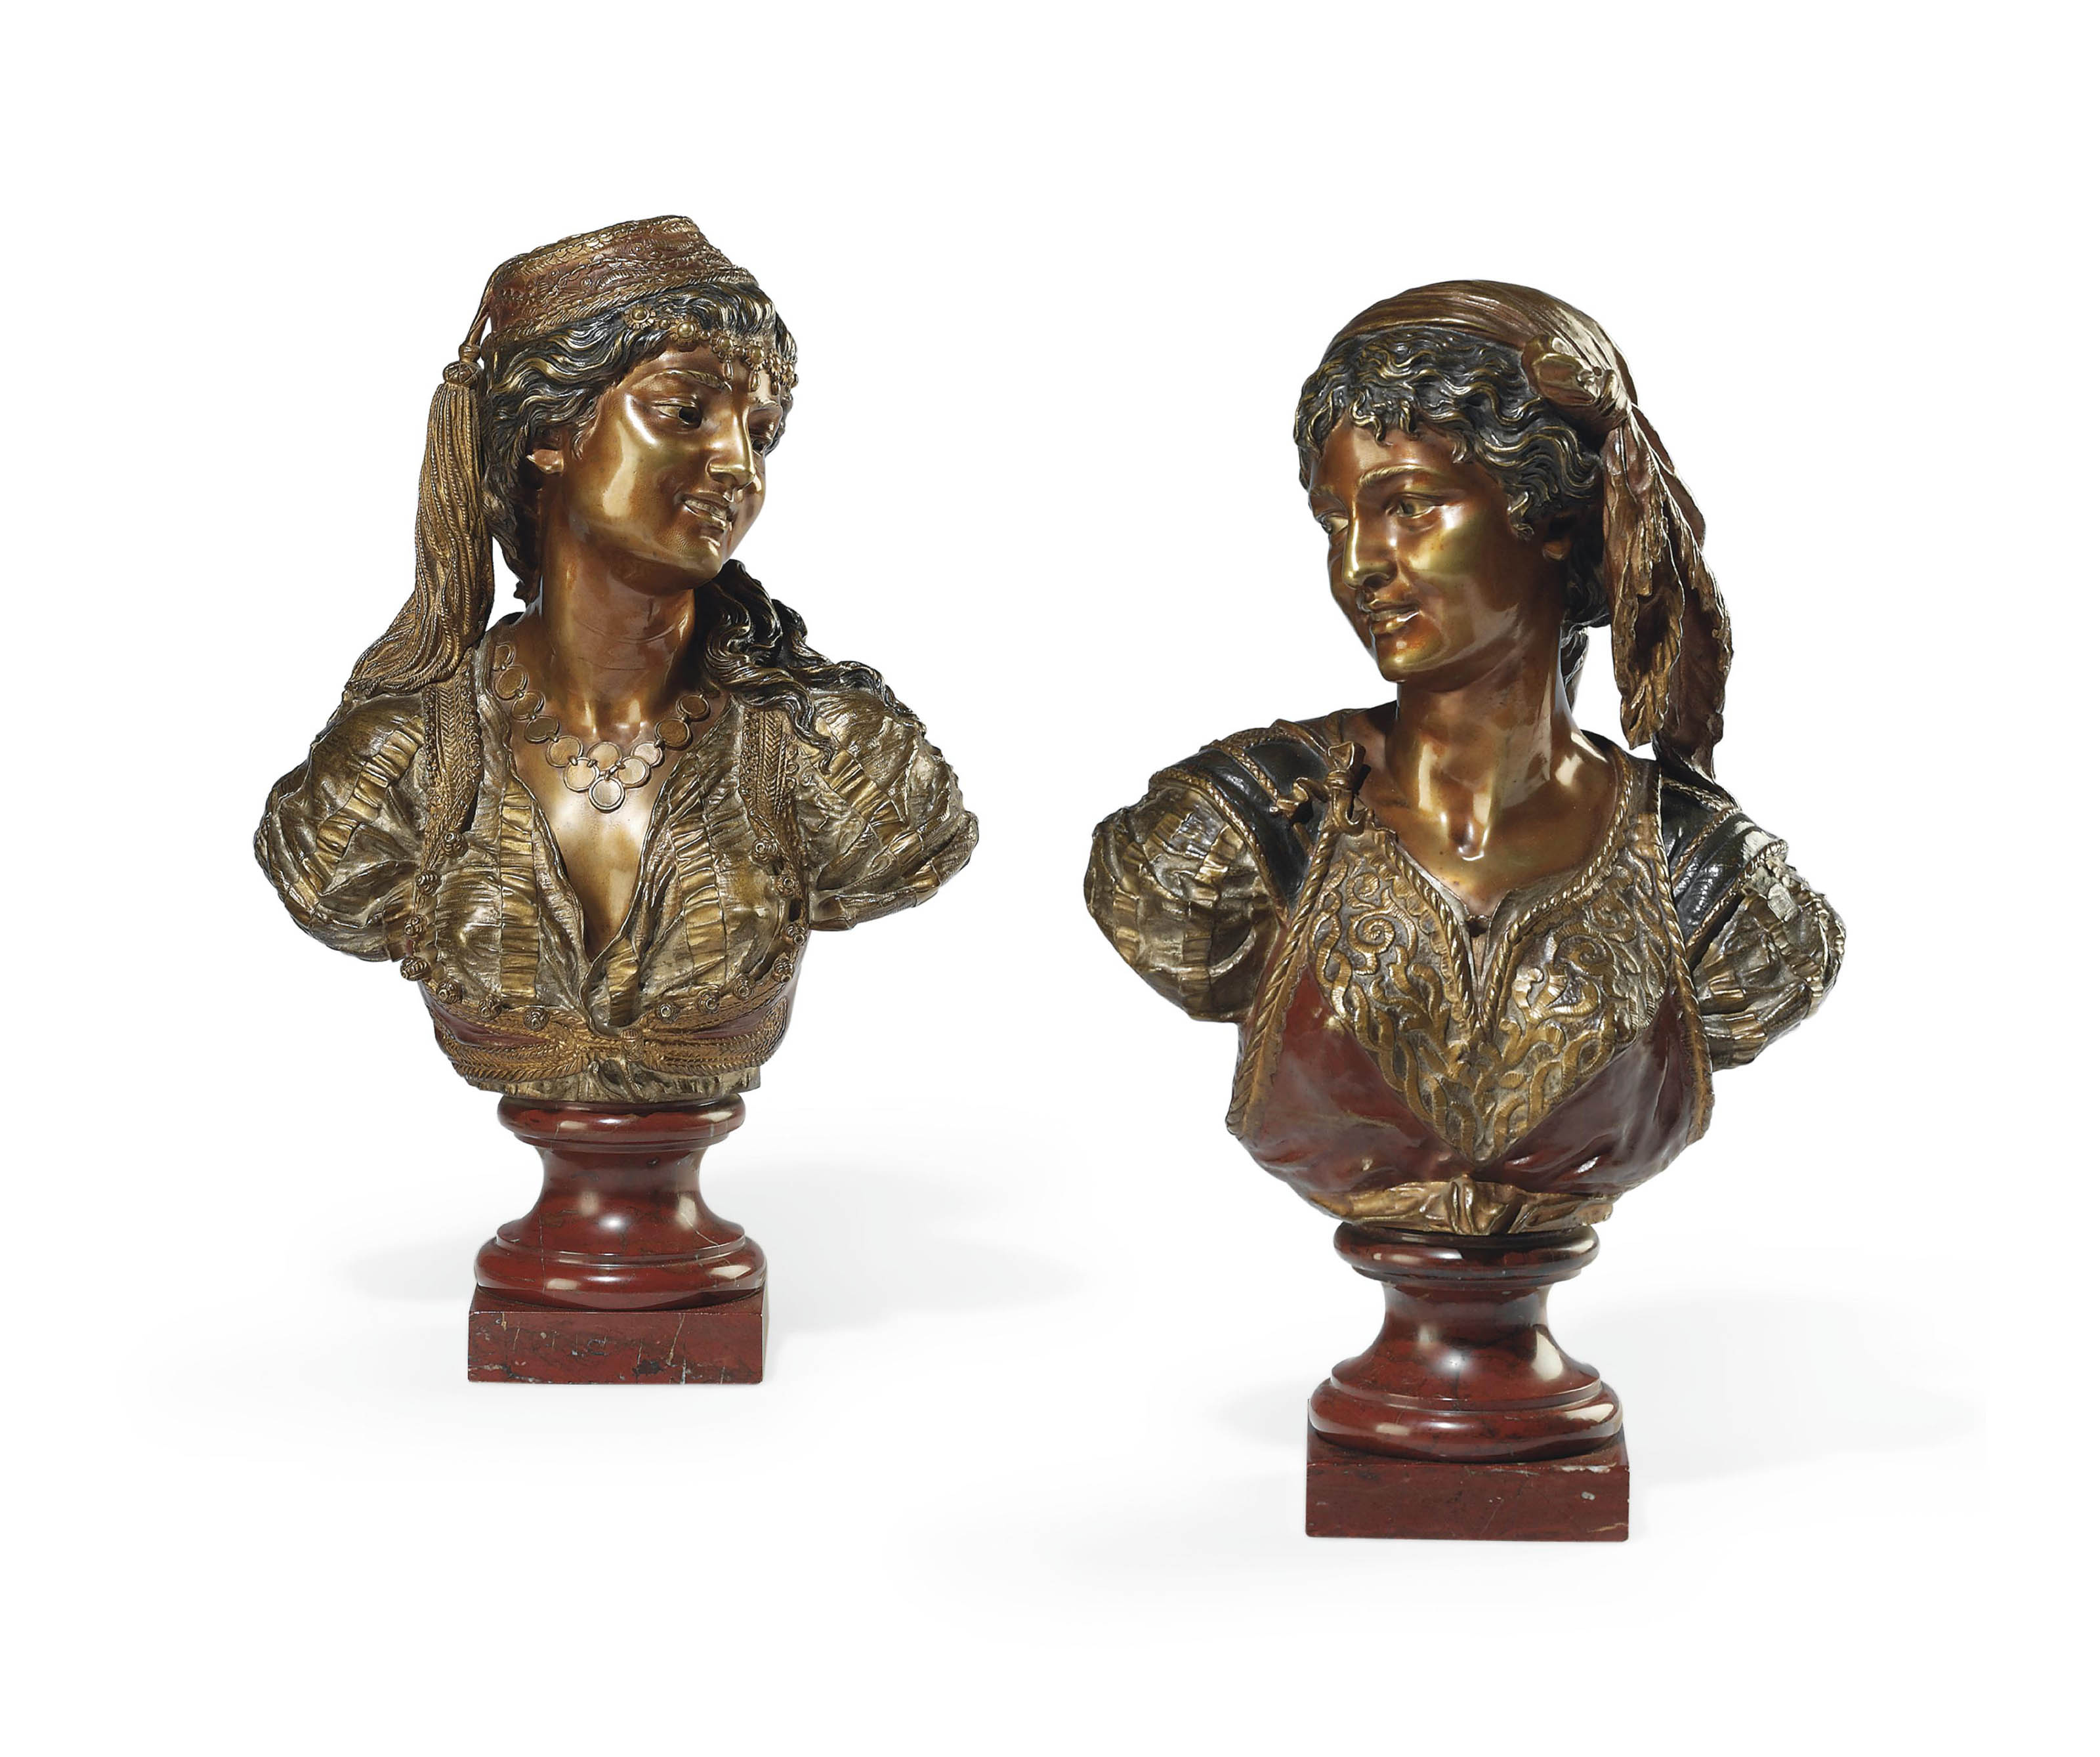 A PAIR OF FRENCH POLYCHROME PATINATED BRONZE BUSTS OF TURKISH WOMEN